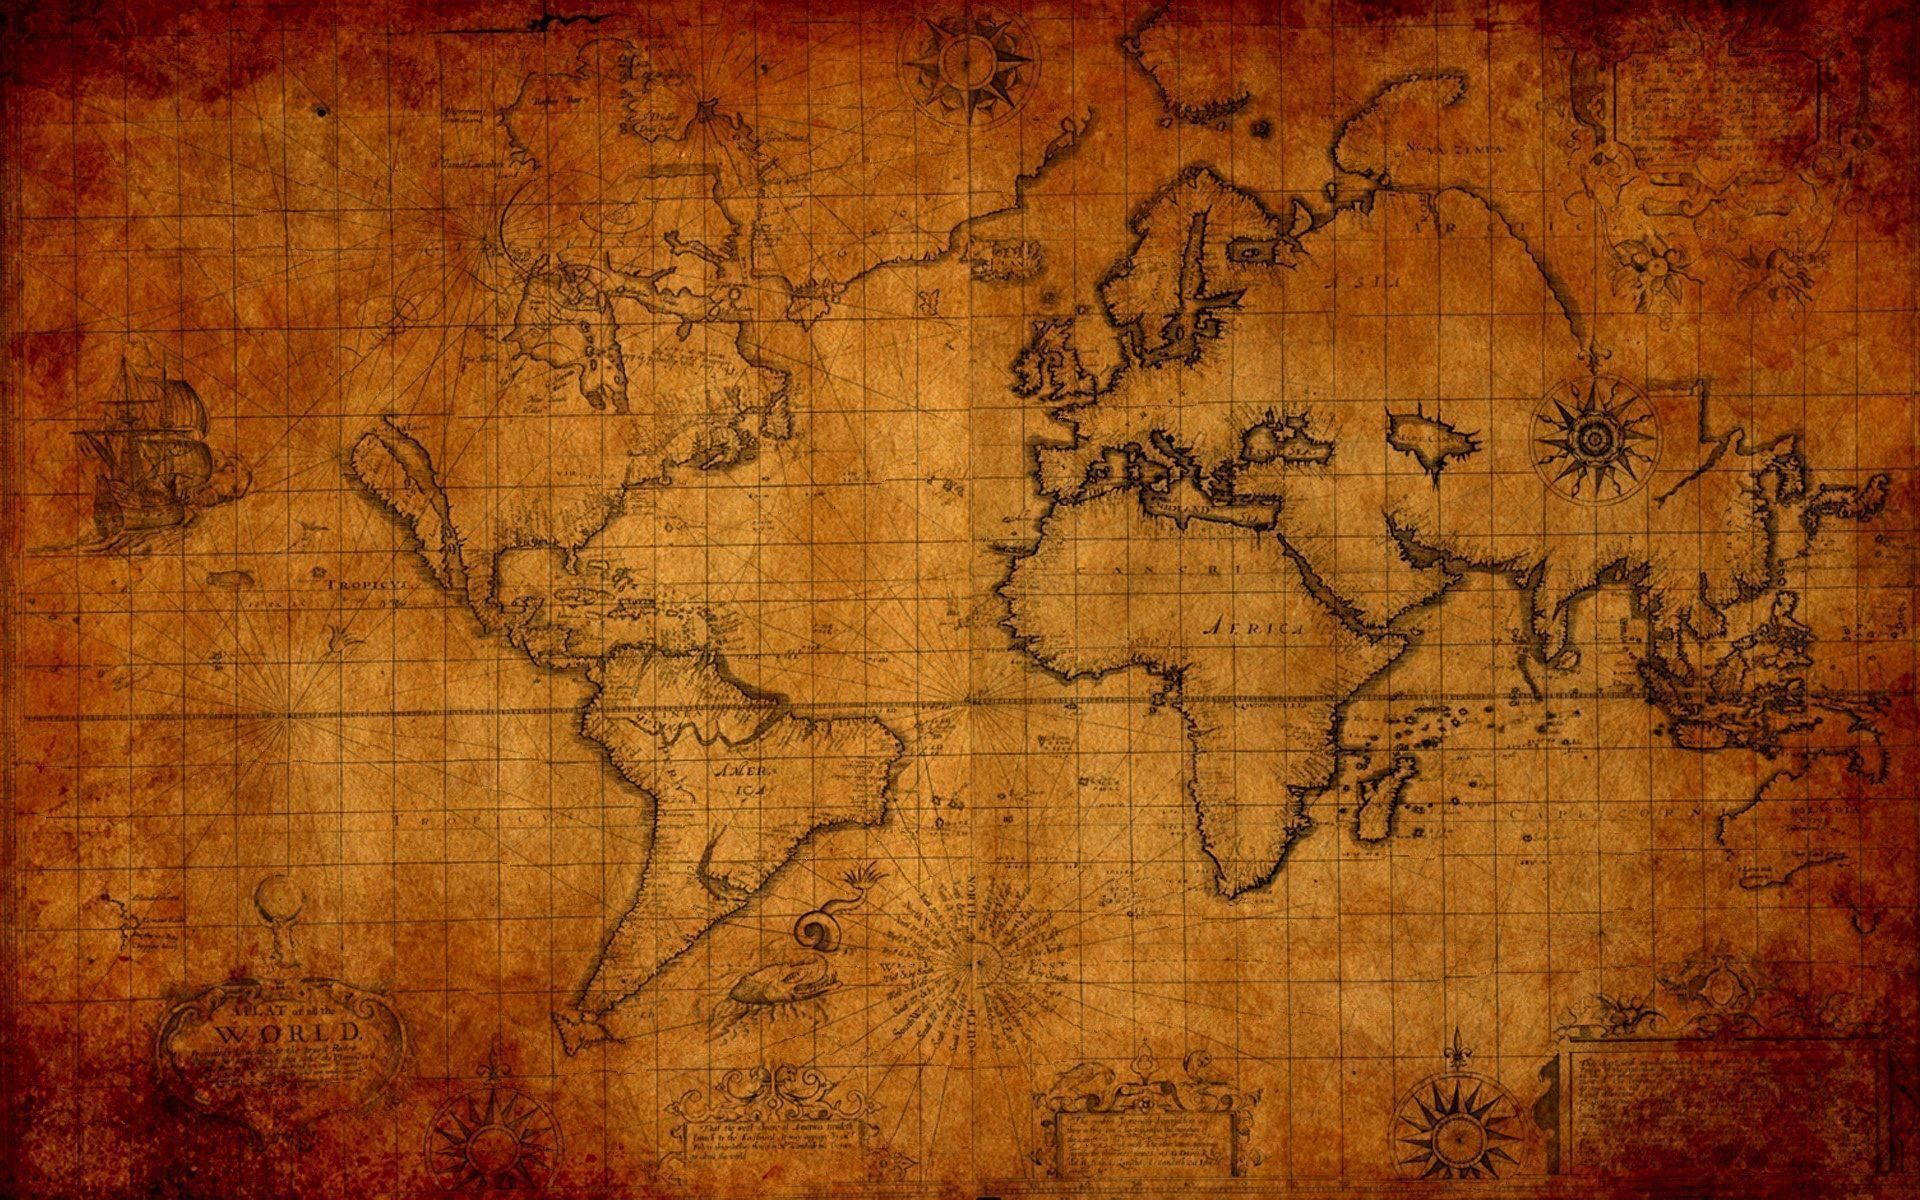 Old World Map Hd.World Map Wallpapers Full Hd Wallpaper Search Backgrounds